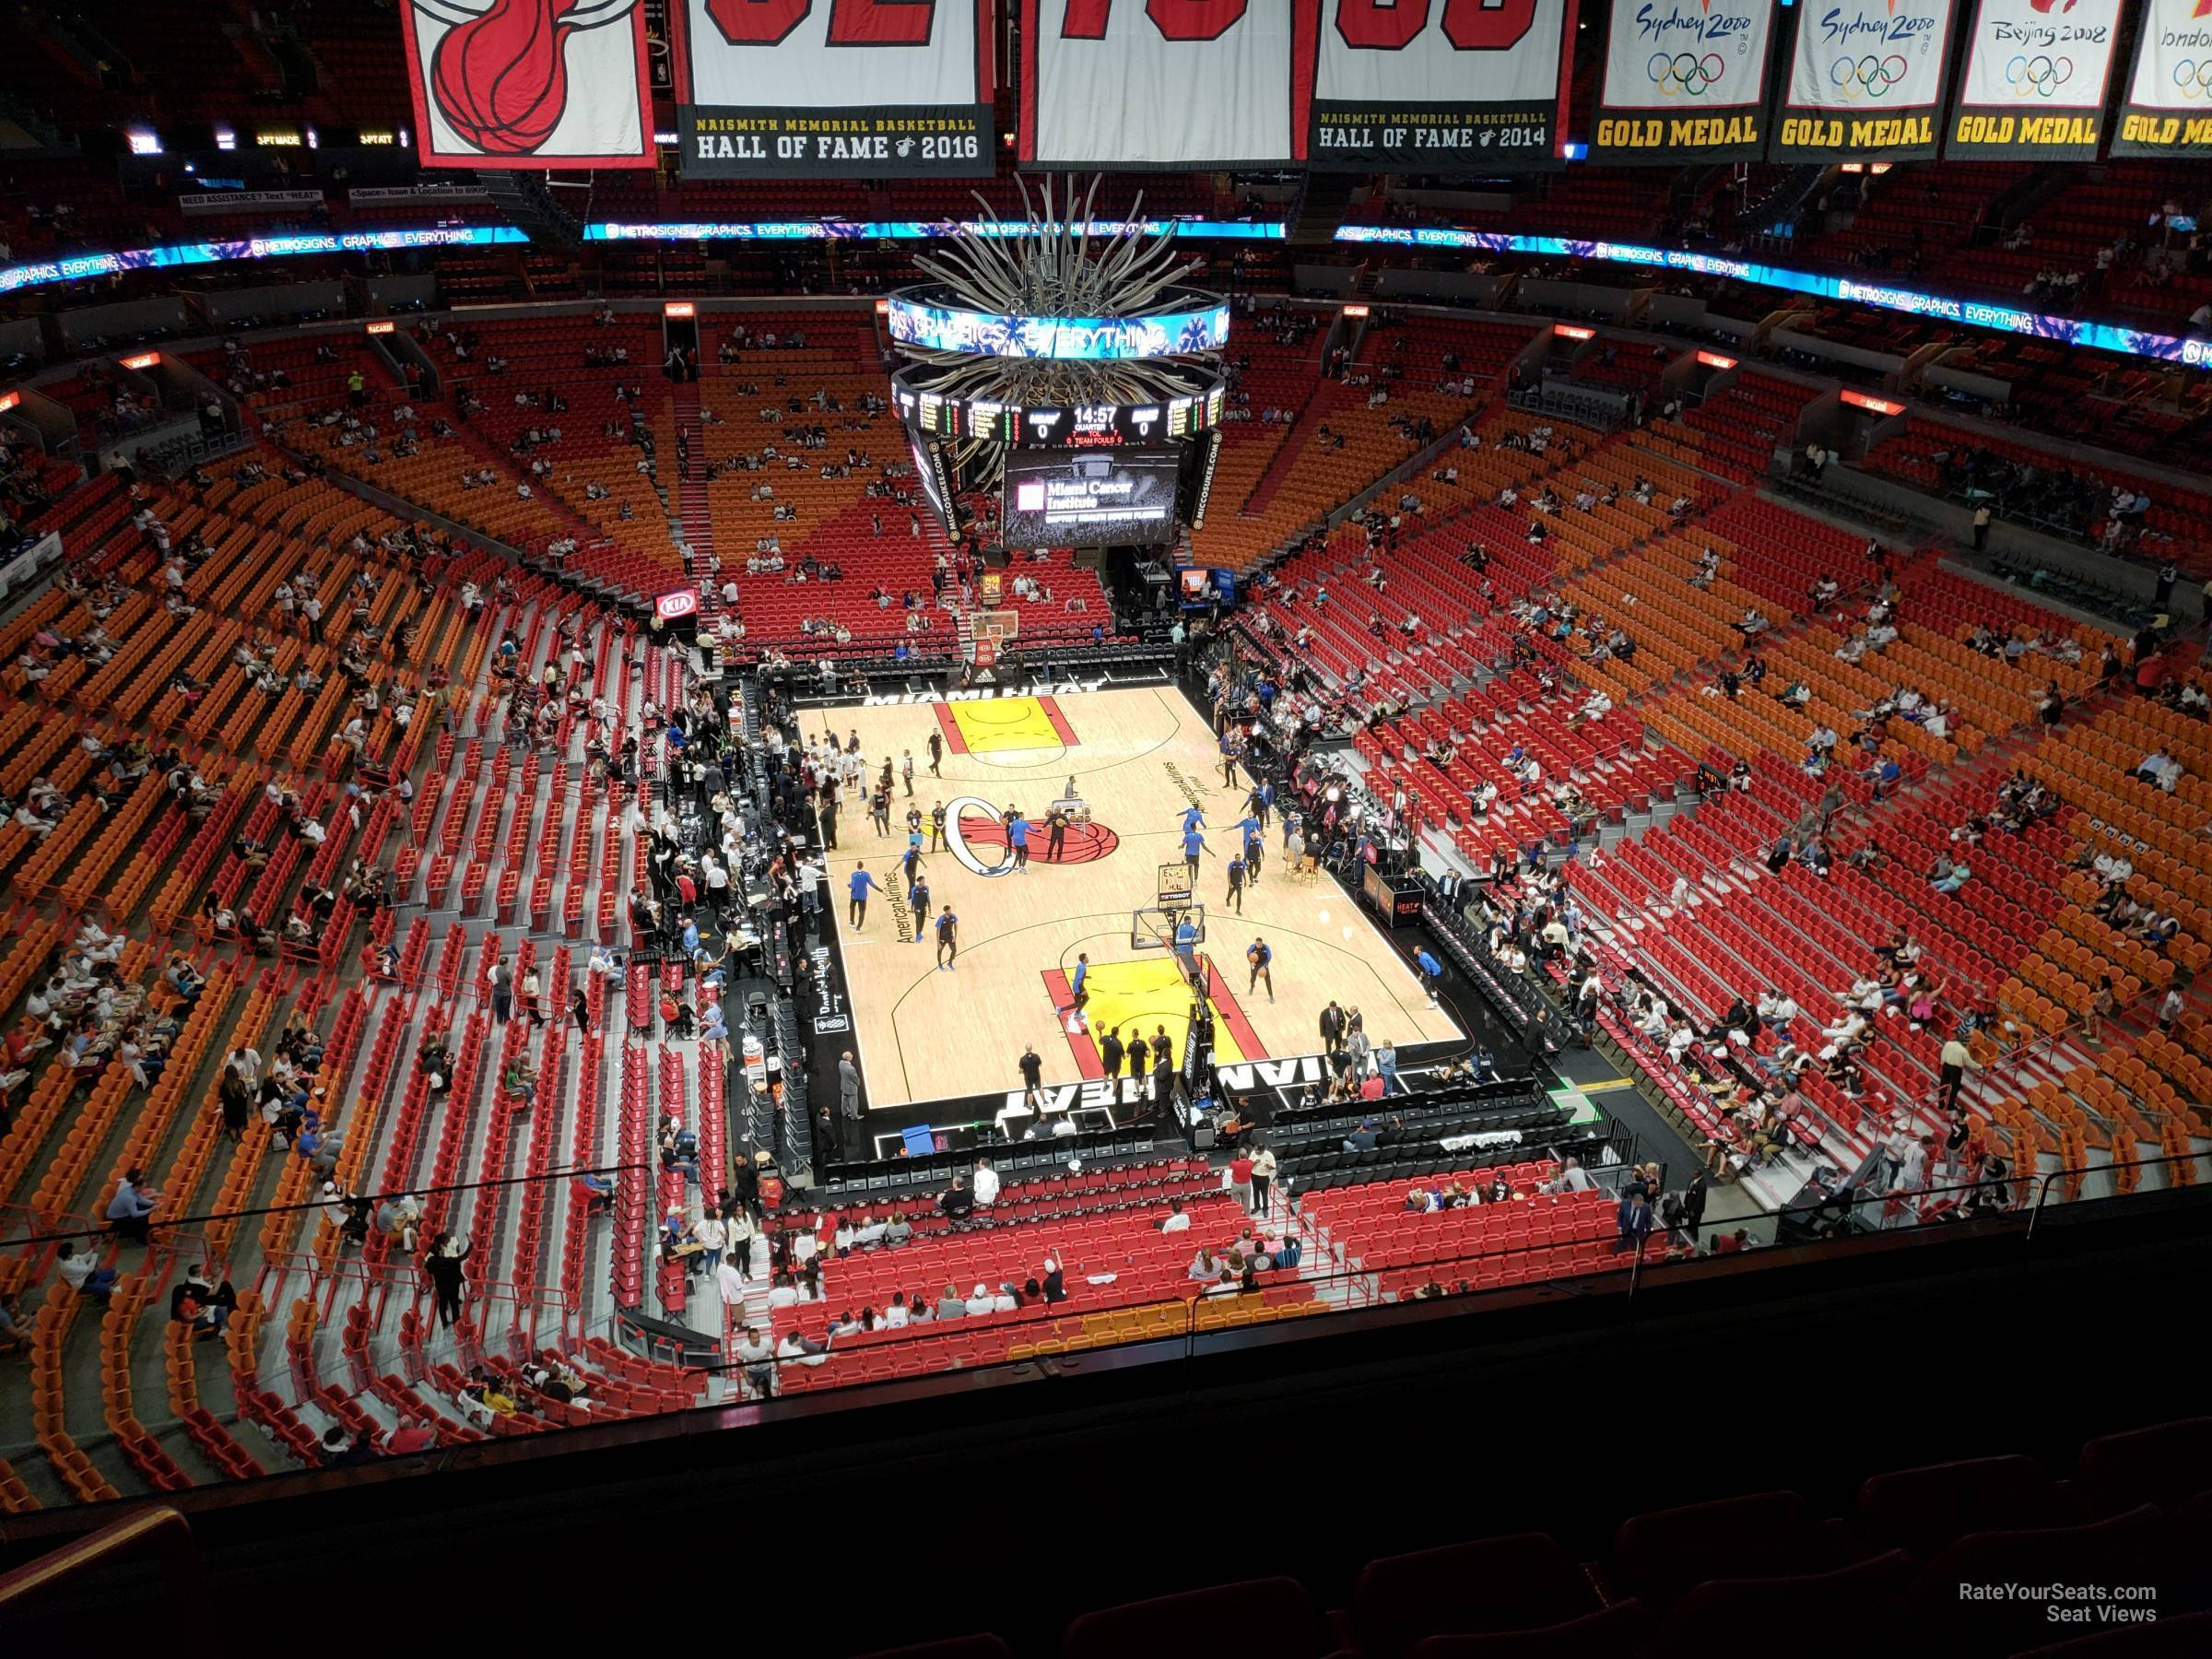 americanairlines arena section 406 - miami heat